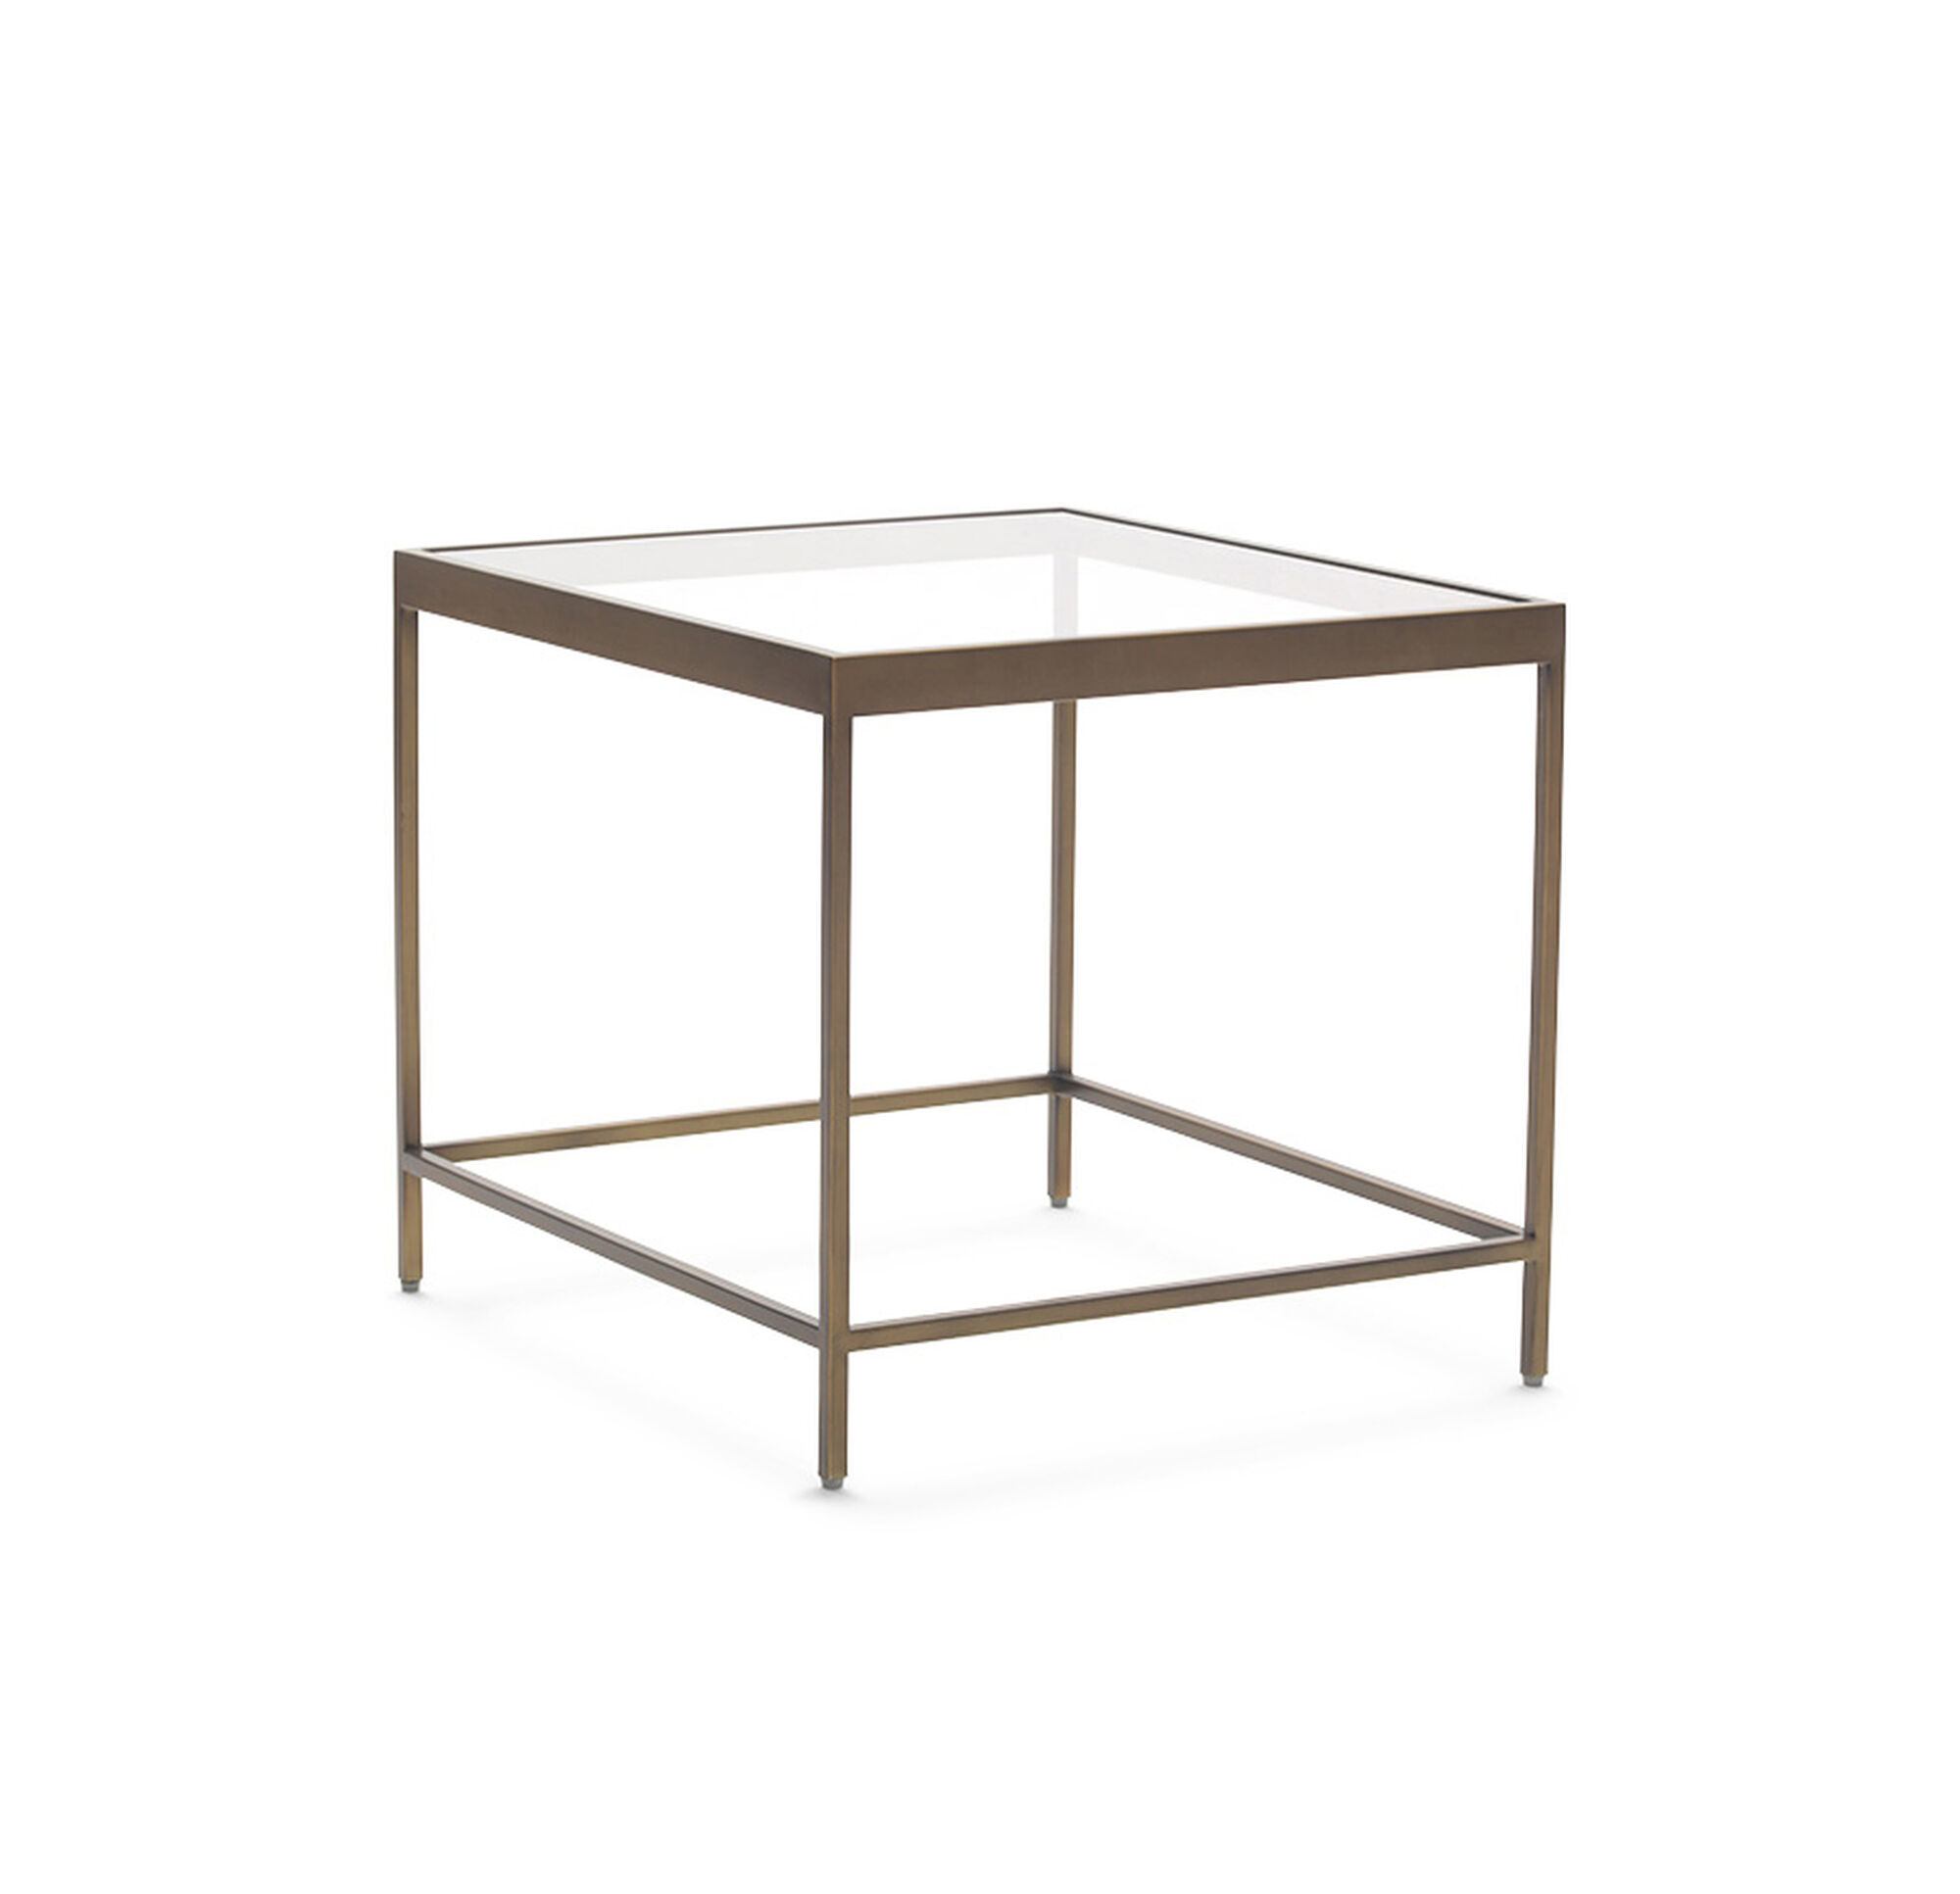 VIENNA SIDE TABLE ANTIQUE BRASS - Brushed brass side table